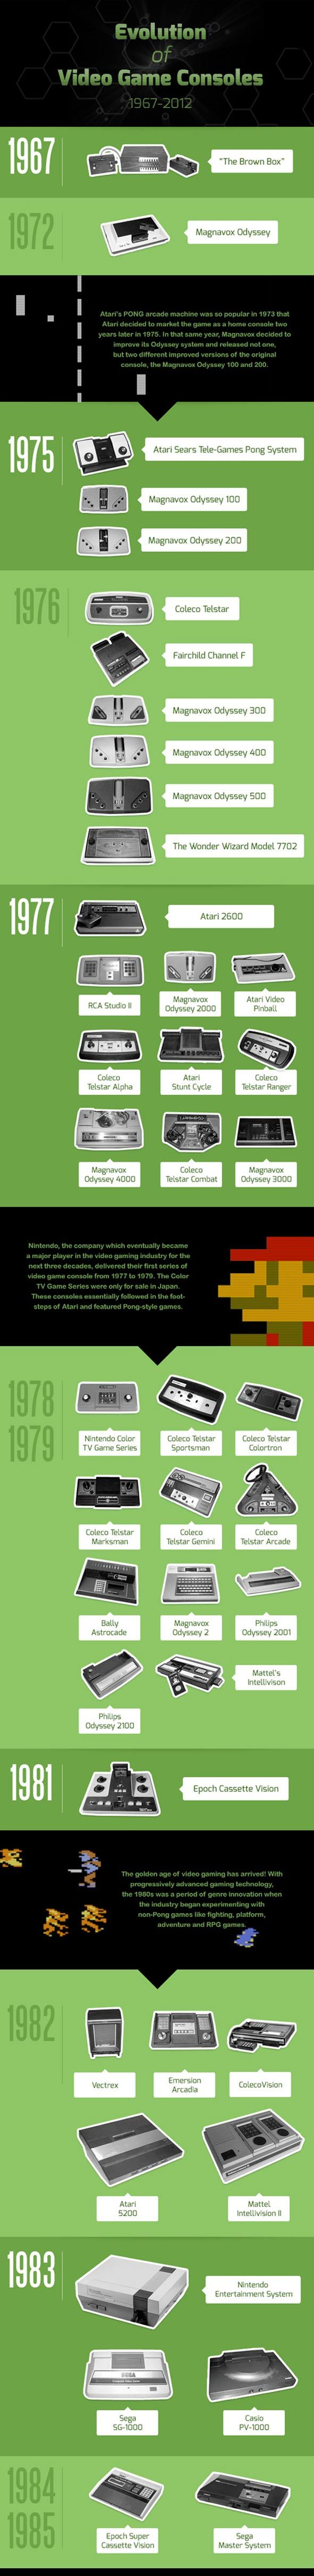 The Evolution of Video Game Consoles [Pic] Evolution of